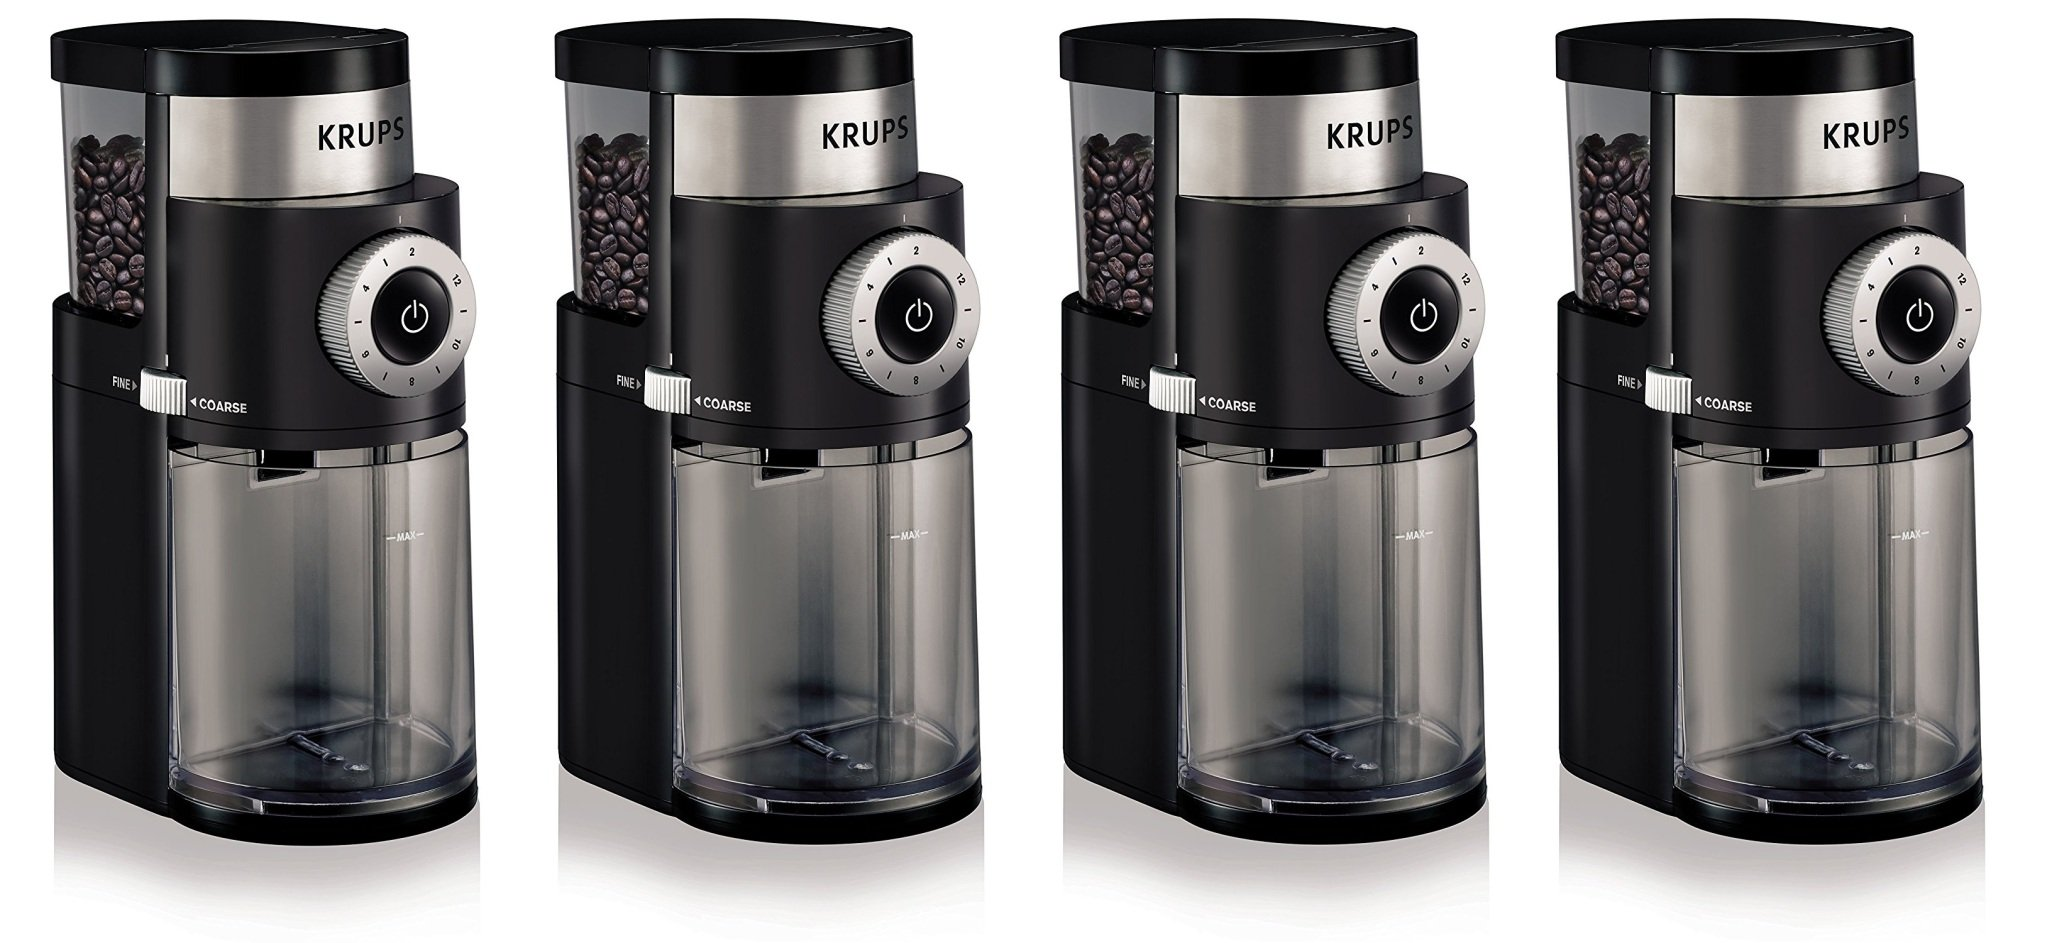 KRUPS GX5000 Professional Electric Coffee ywuFco Burr Grinder with Grind Size and Cup Selection, 7-Ounce, Black, Burr Grinder (Pack of 4)